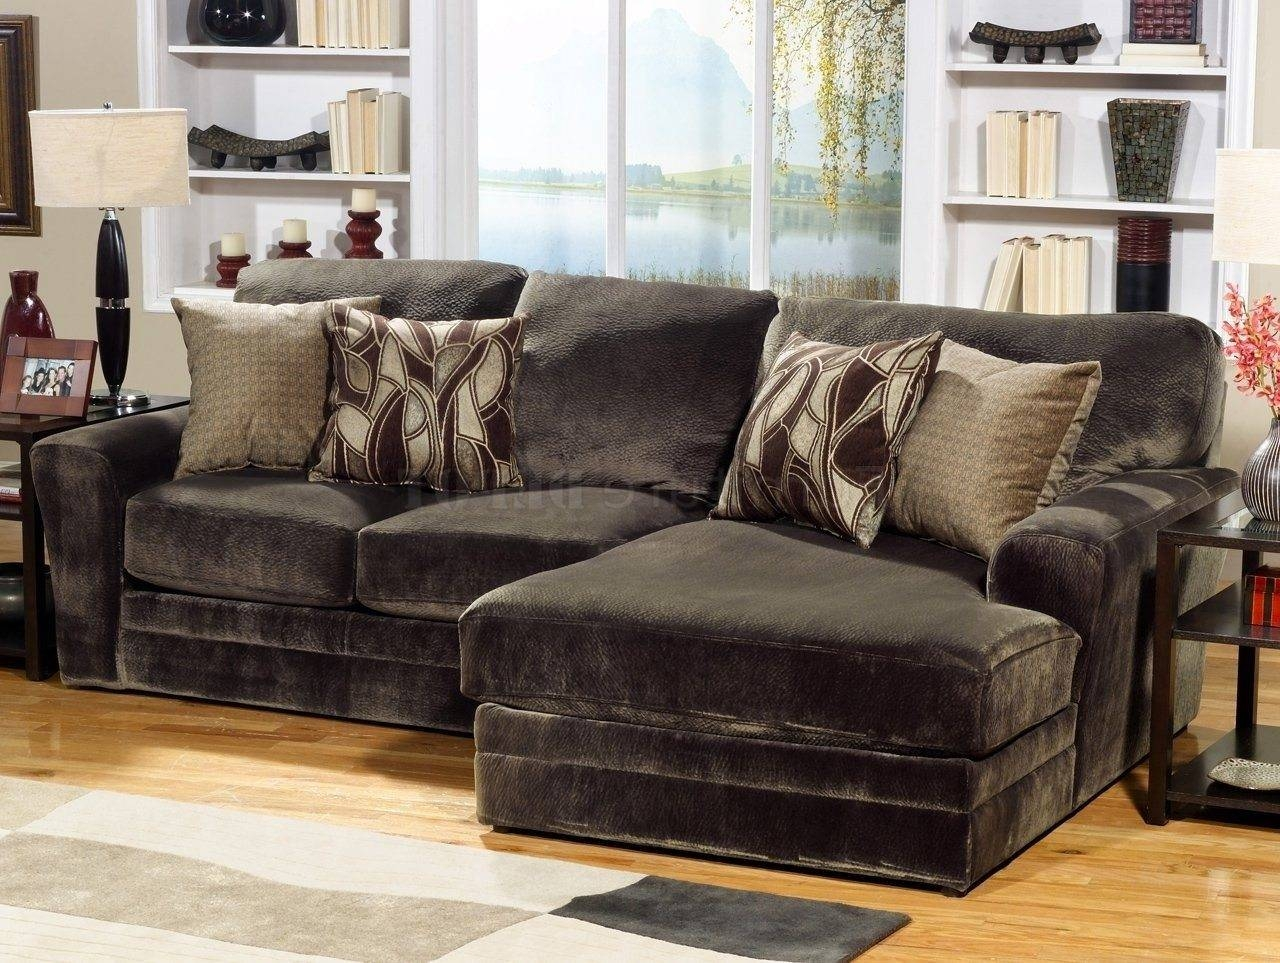 Lovely Chenille Sectional Sofa With Chaise 26 In Sectional Sofas in Chenille Sectional Sofas With Chaise (Image 12 of 15)